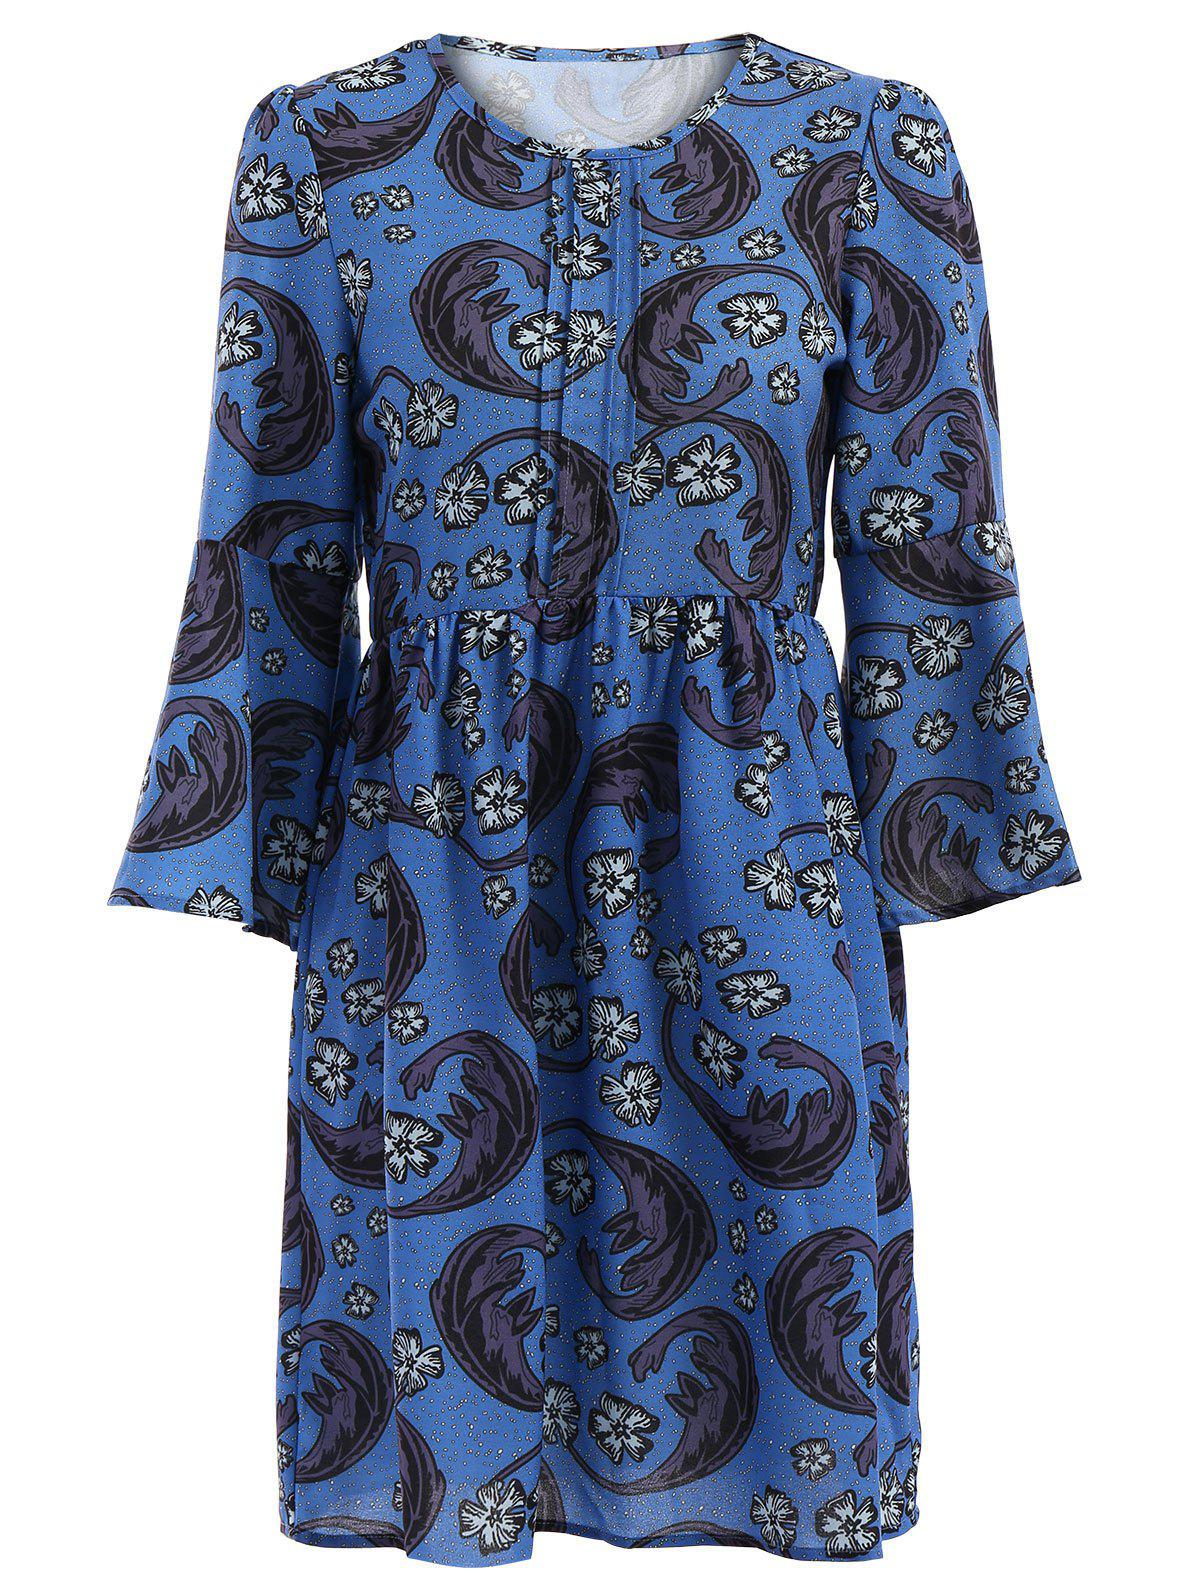 Vintage Style Round Collar Flare Sleeve Floral Print Loose-Fitting Women's Dress - BLUE 2XL